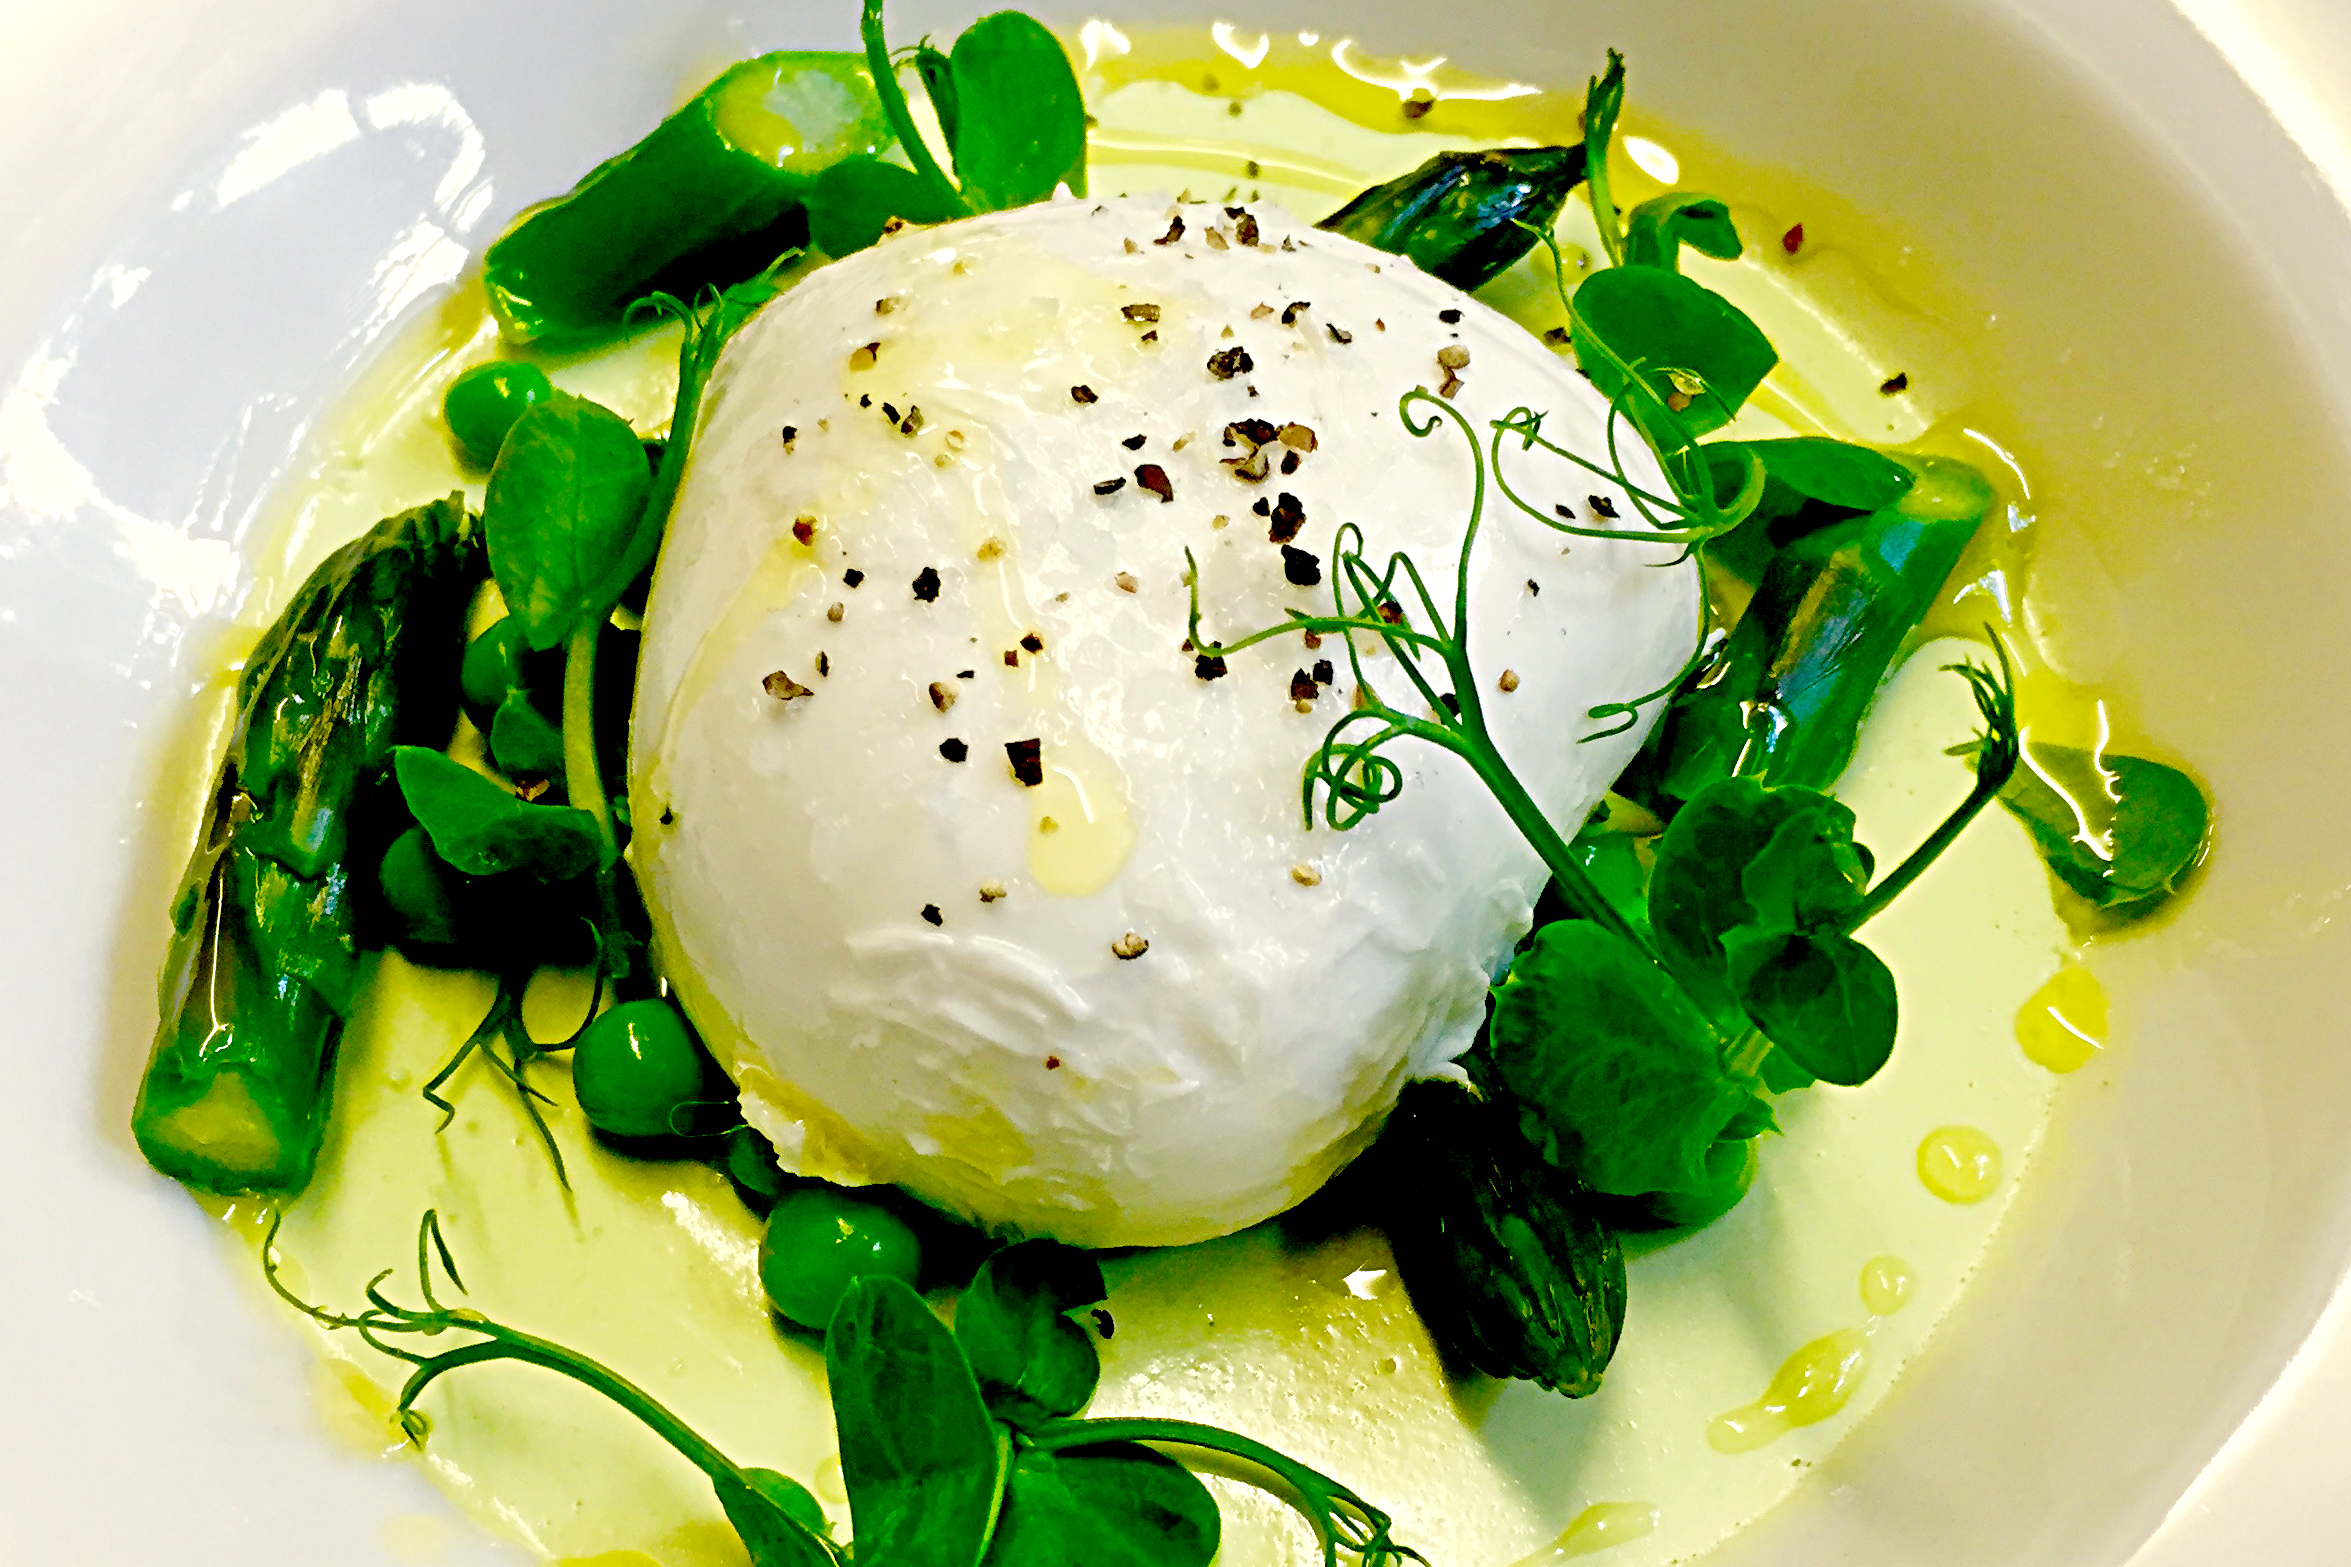 Buffalo mozzarella salad with a minted pea panna cotta , asparagus tips, peas and a lemon oil dressi